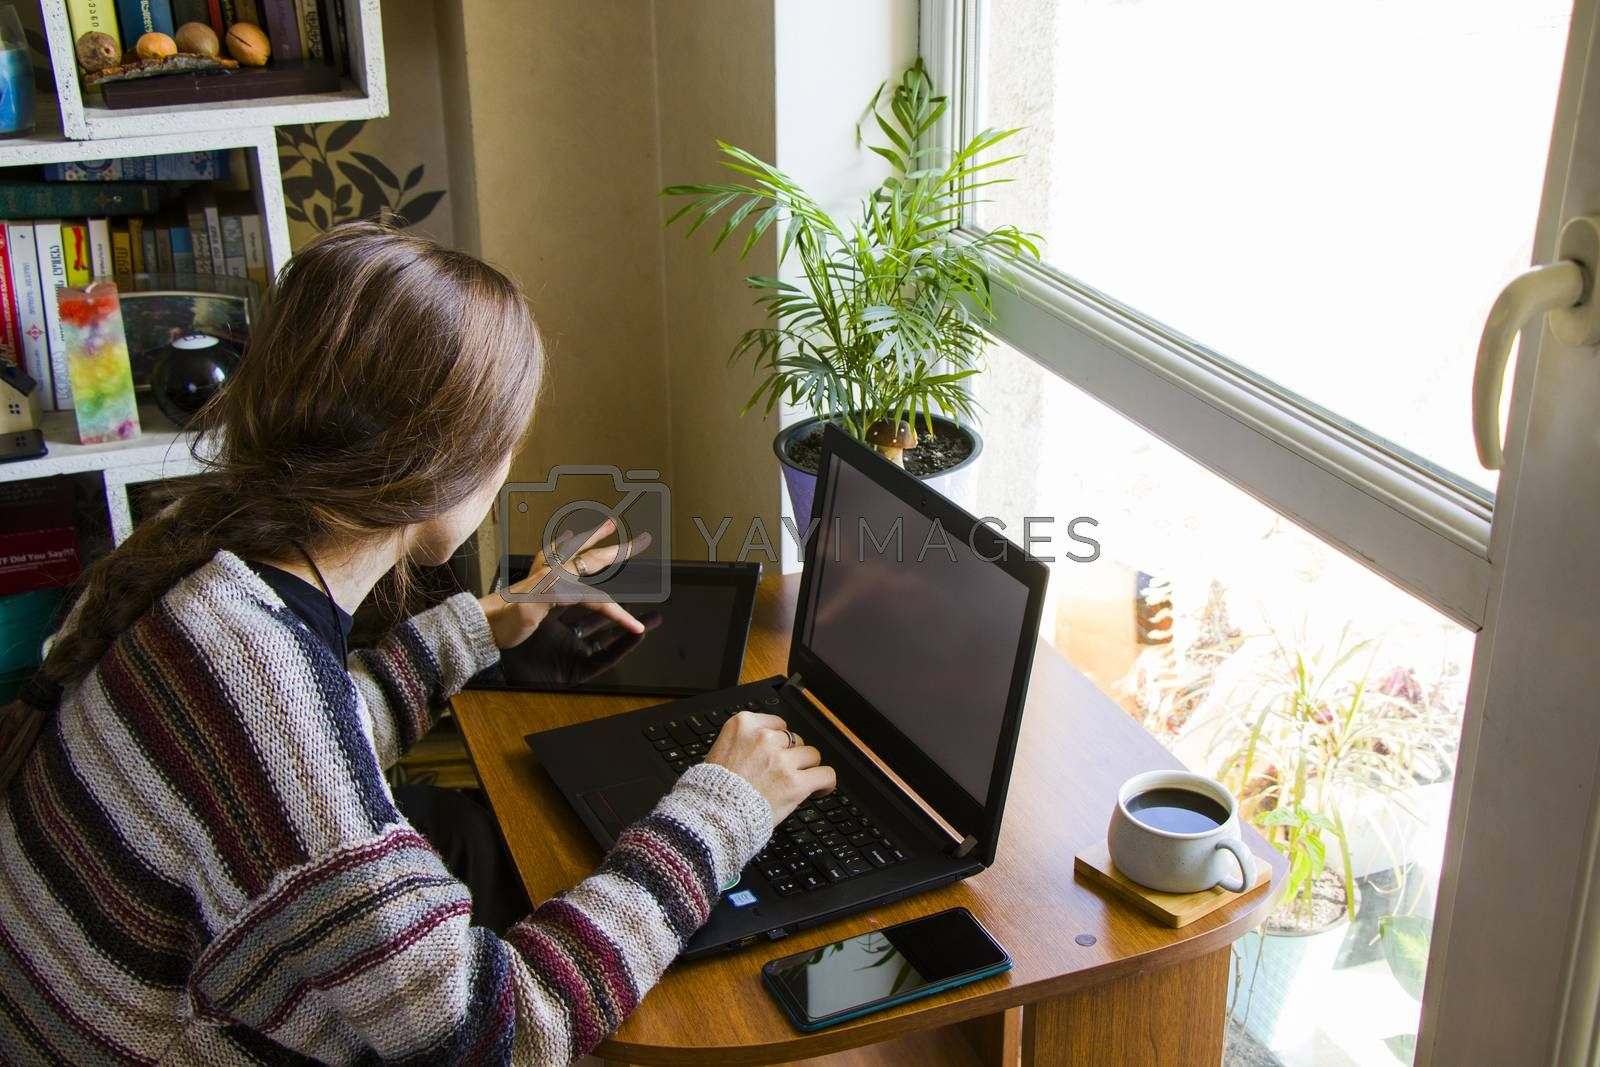 Tbilisi, Georgia - October 09, 2020: Woman working with notebook in workplace, digital tablet, mobile phone, coffee and plants in workspace, home working